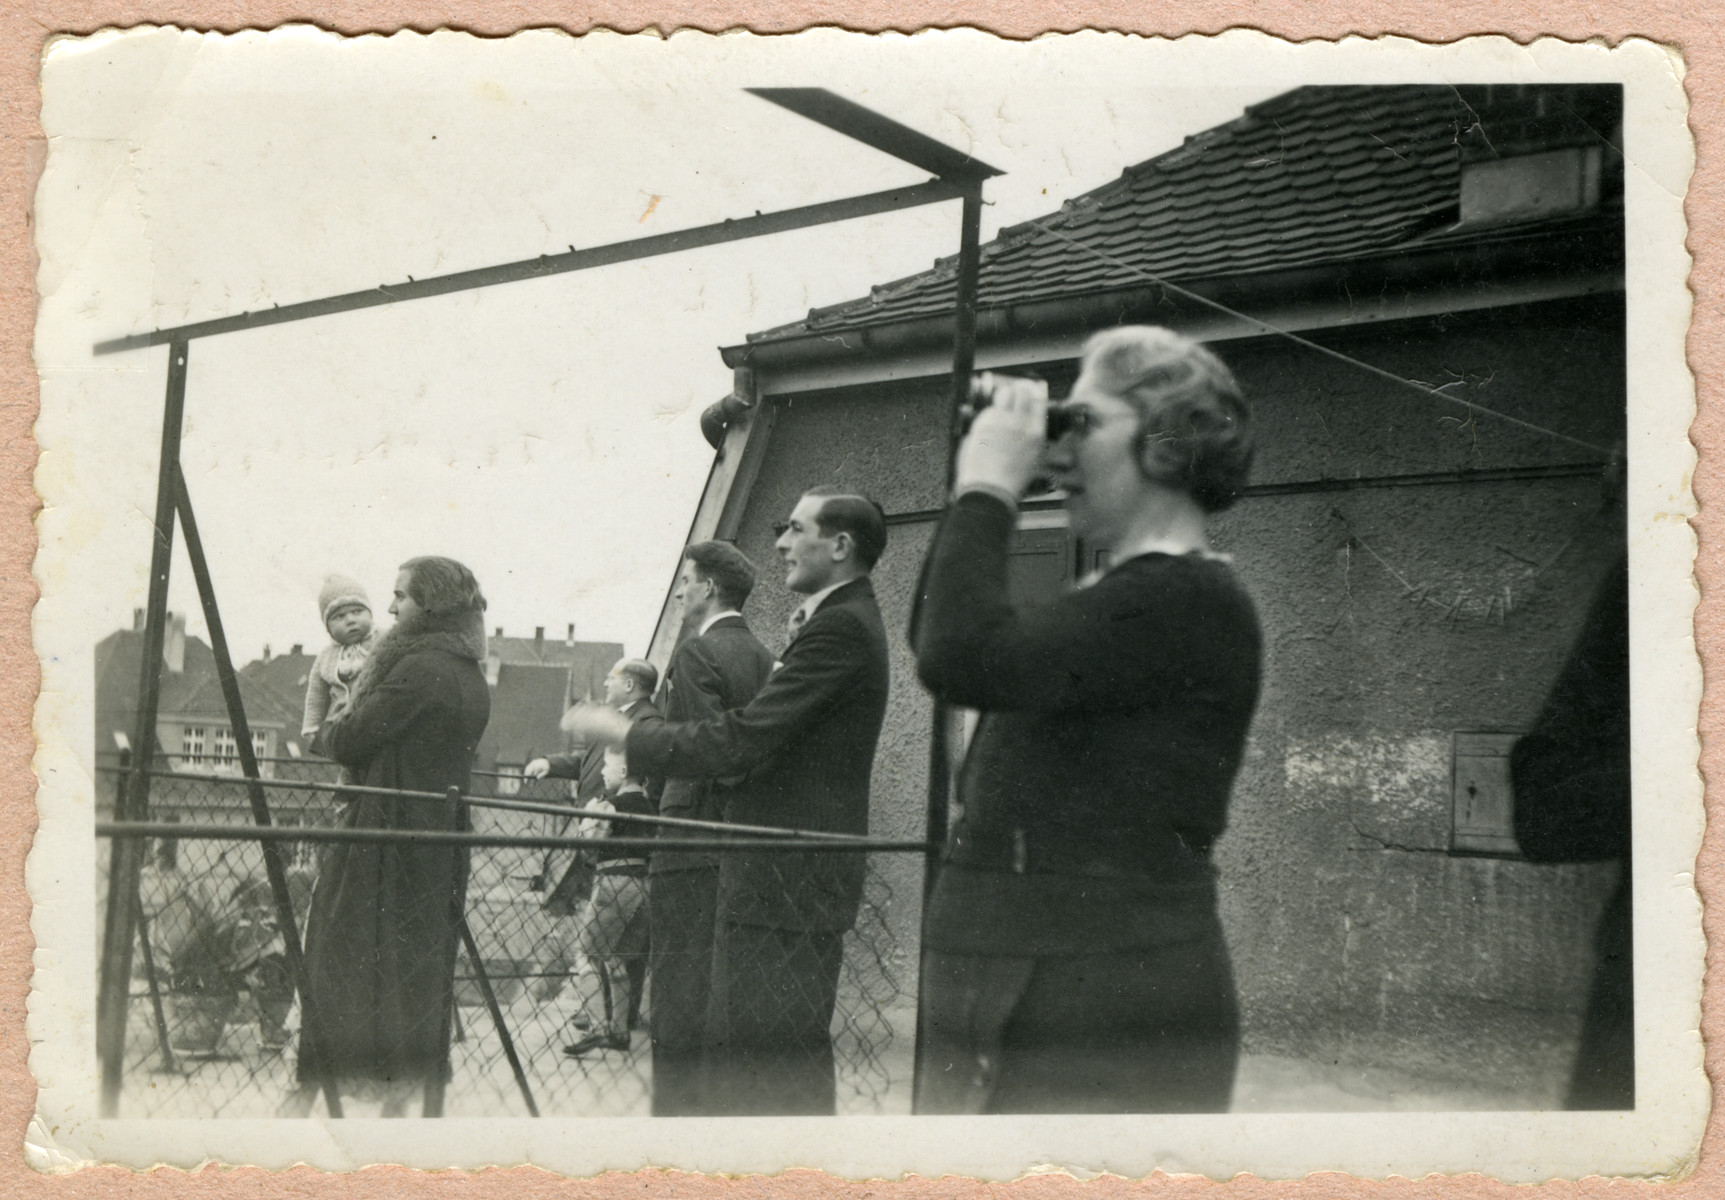 Claire Feigenbaum looks up to the sky with binoculors.  [Date and location are not verified.]